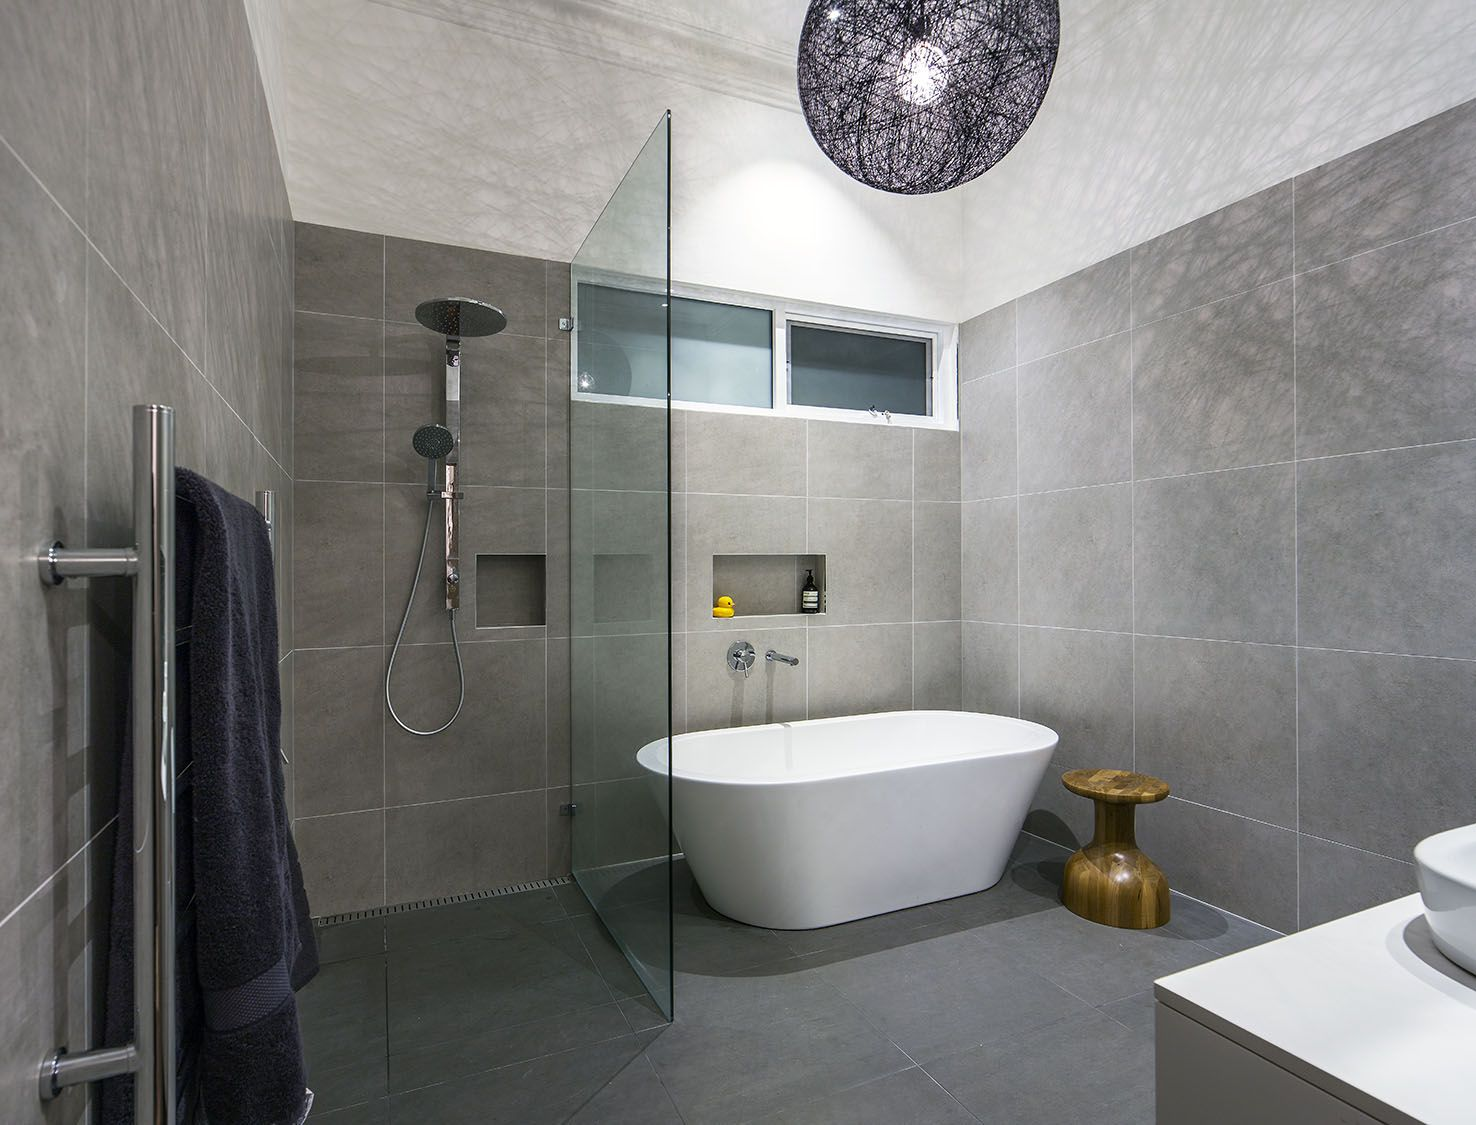 pin by giftсаrds еbay on heya bathroom renovations on bathroom renovation ideas melbourne id=92331